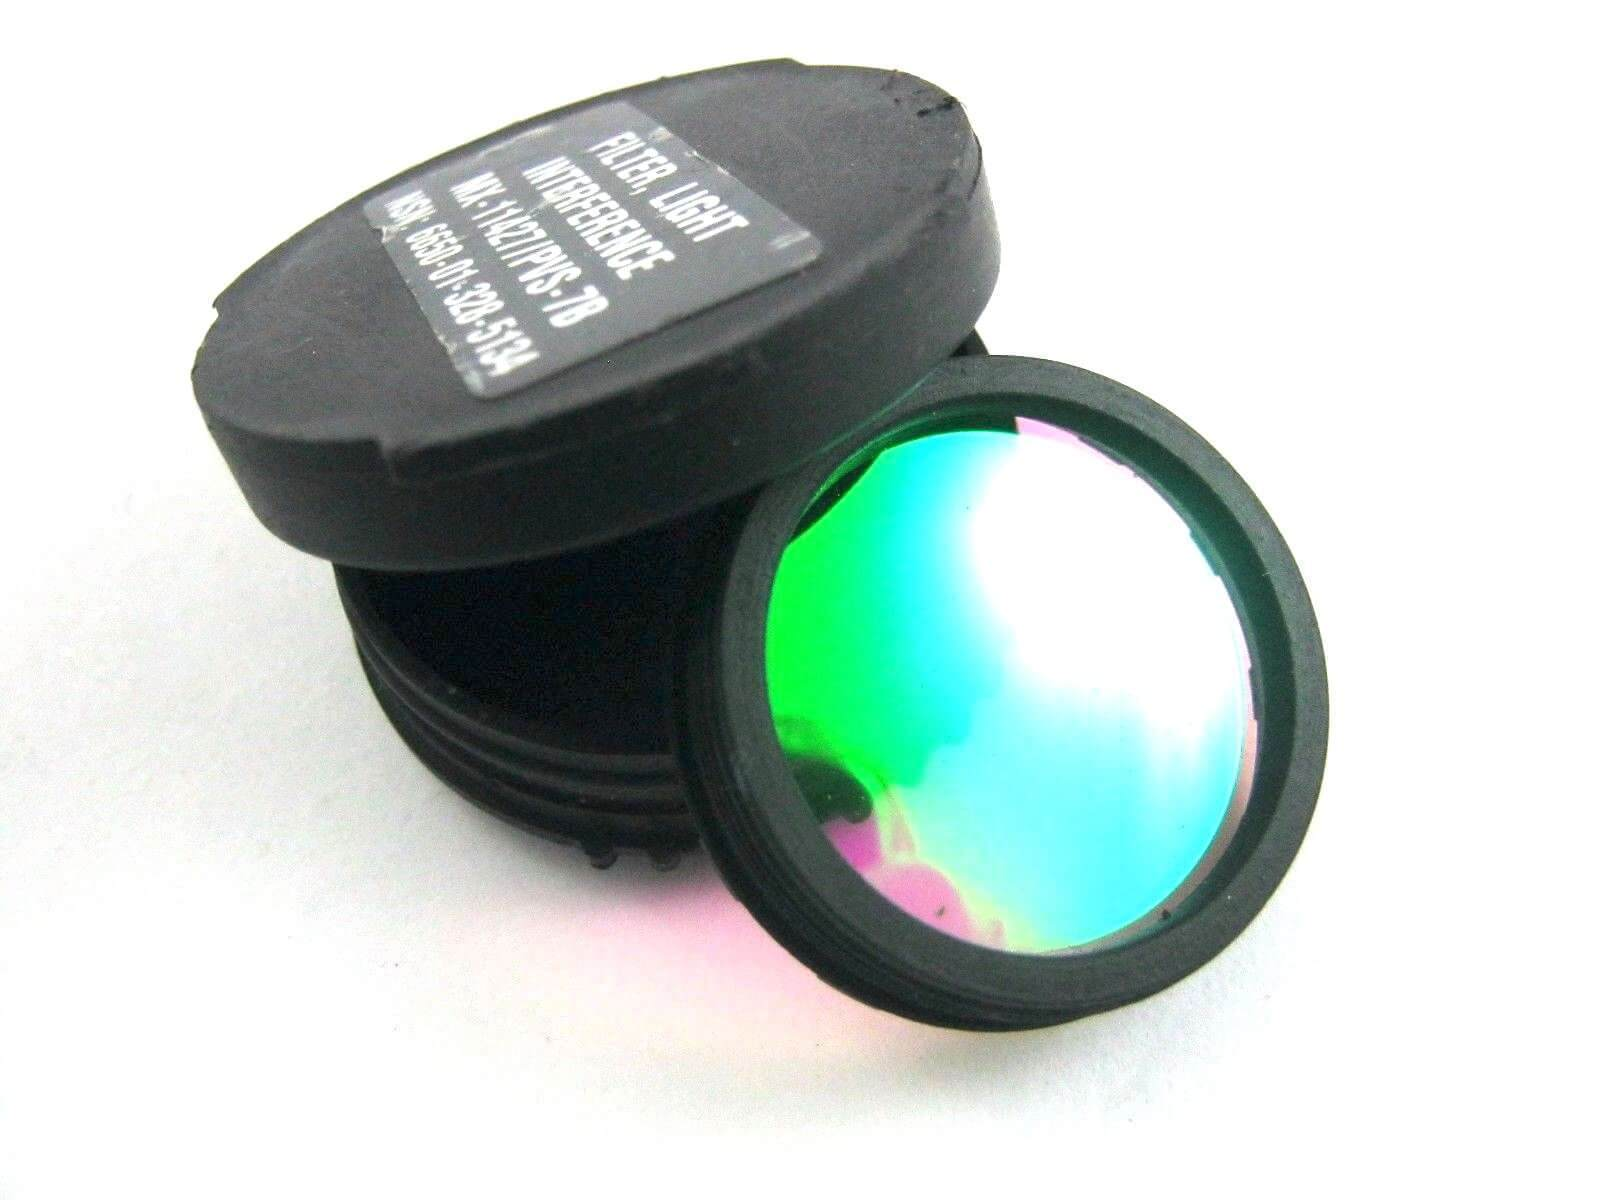 Light Interference Filter LIF, Night Vision Lens PVS 14 & 7 NVG, Army Issue